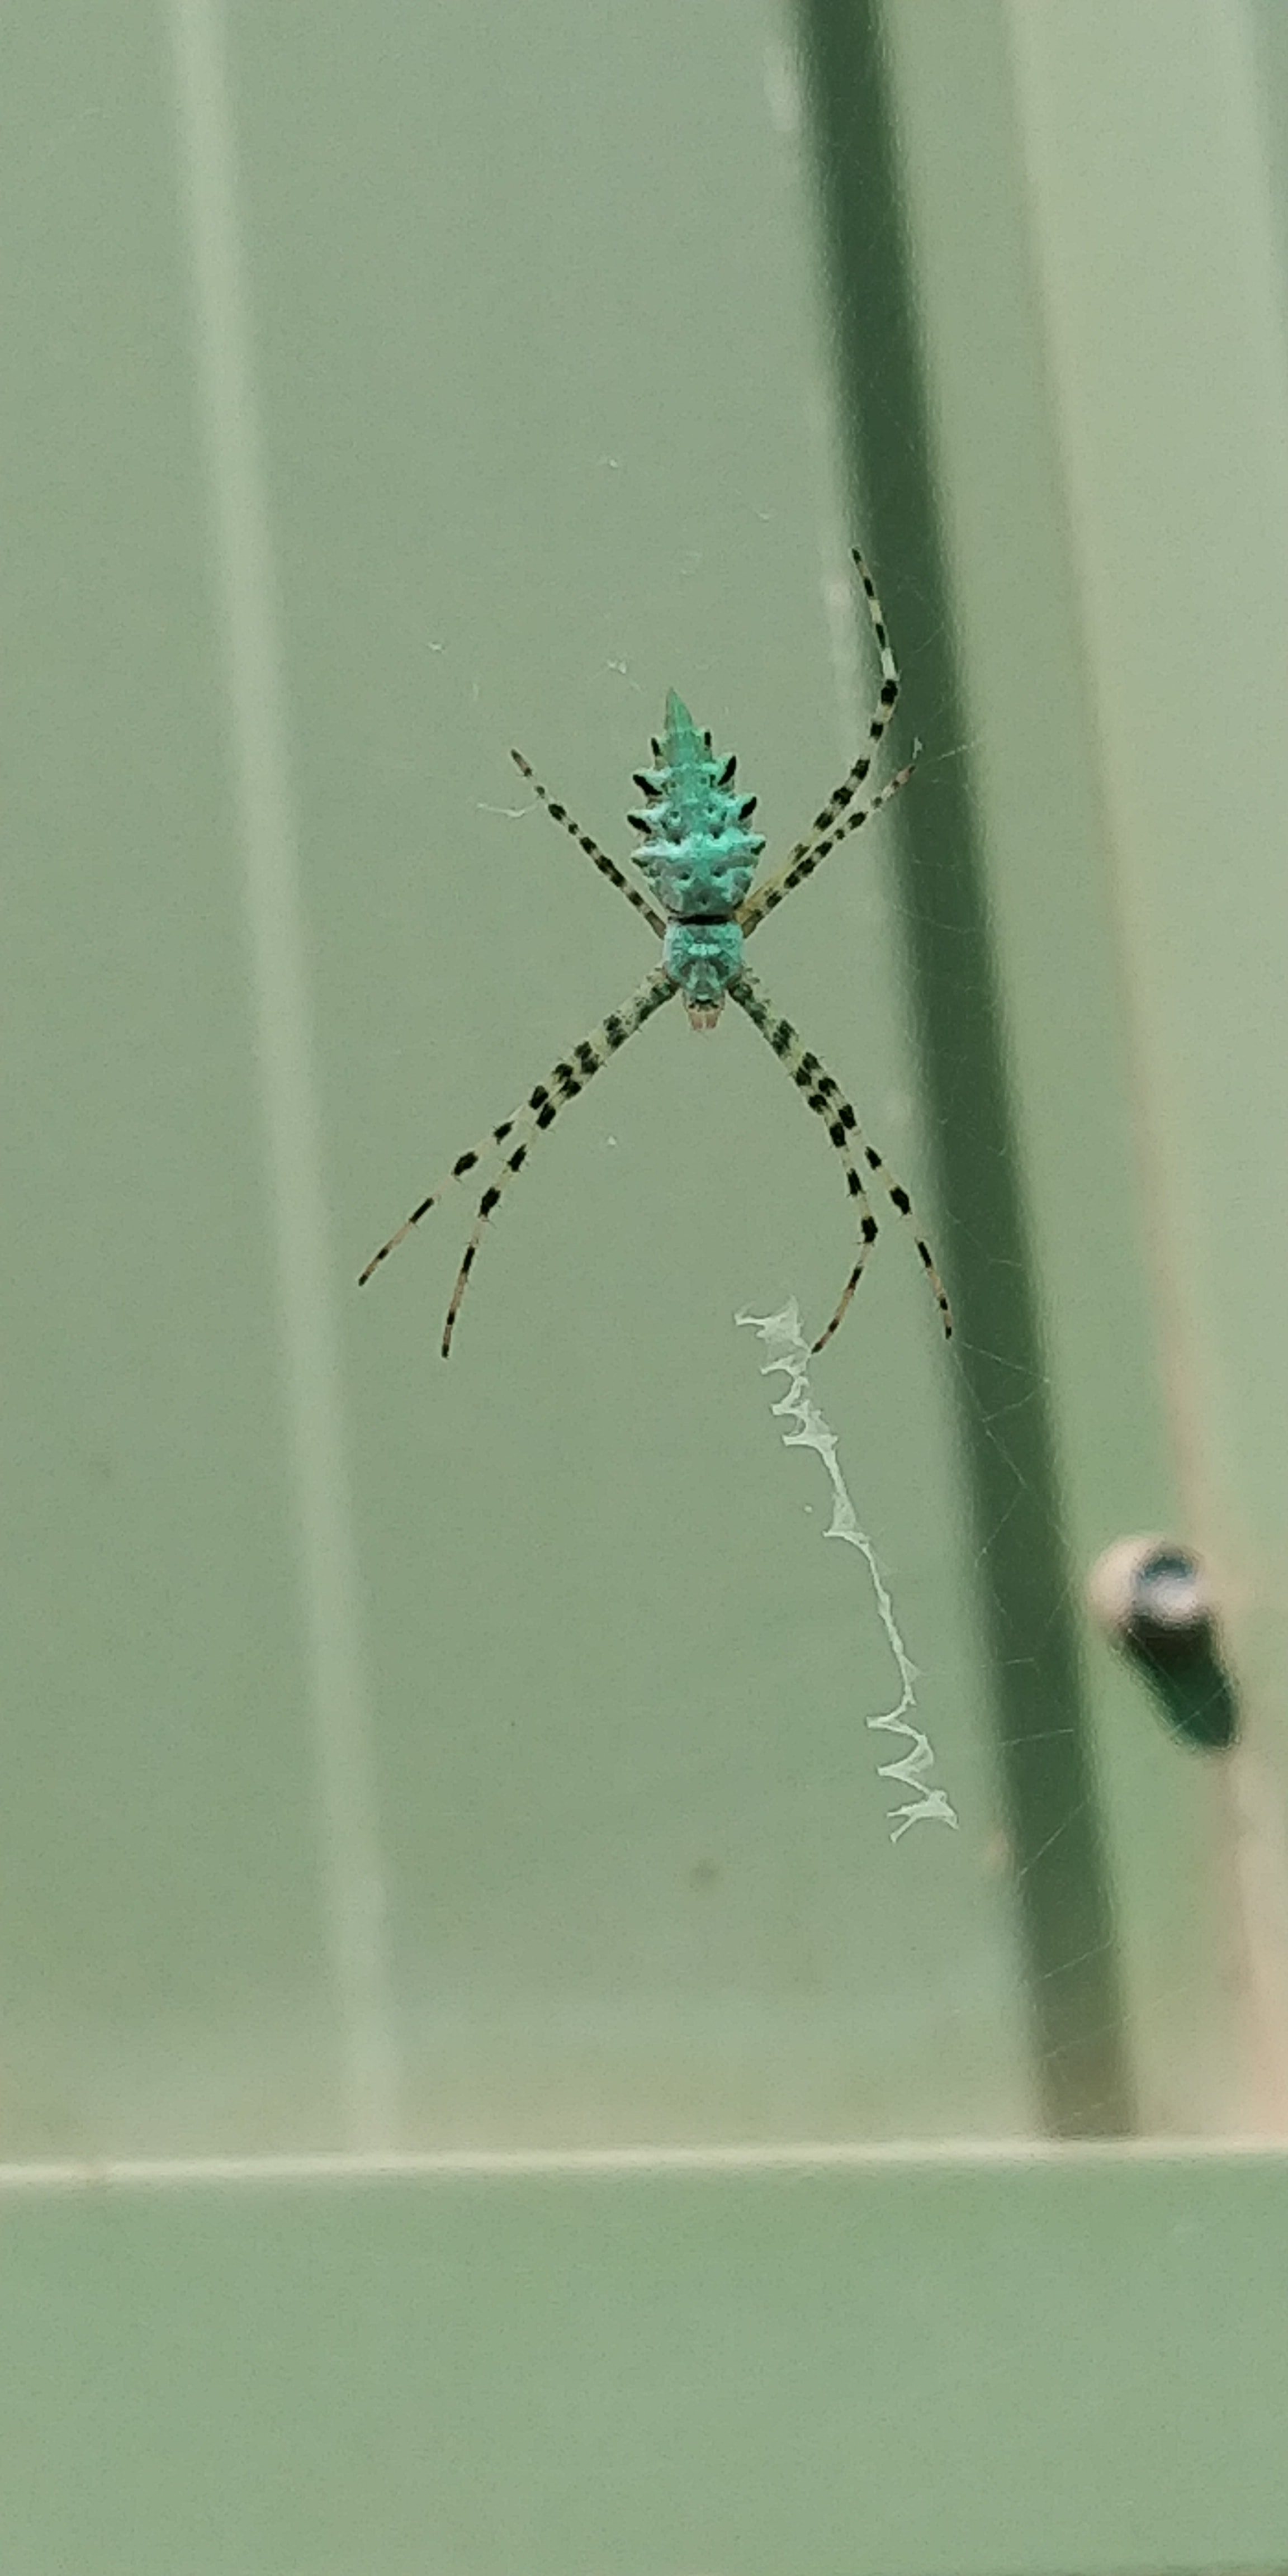 Picture of Argiope lobata (Lobed Argiope) - Dorsal,Webs